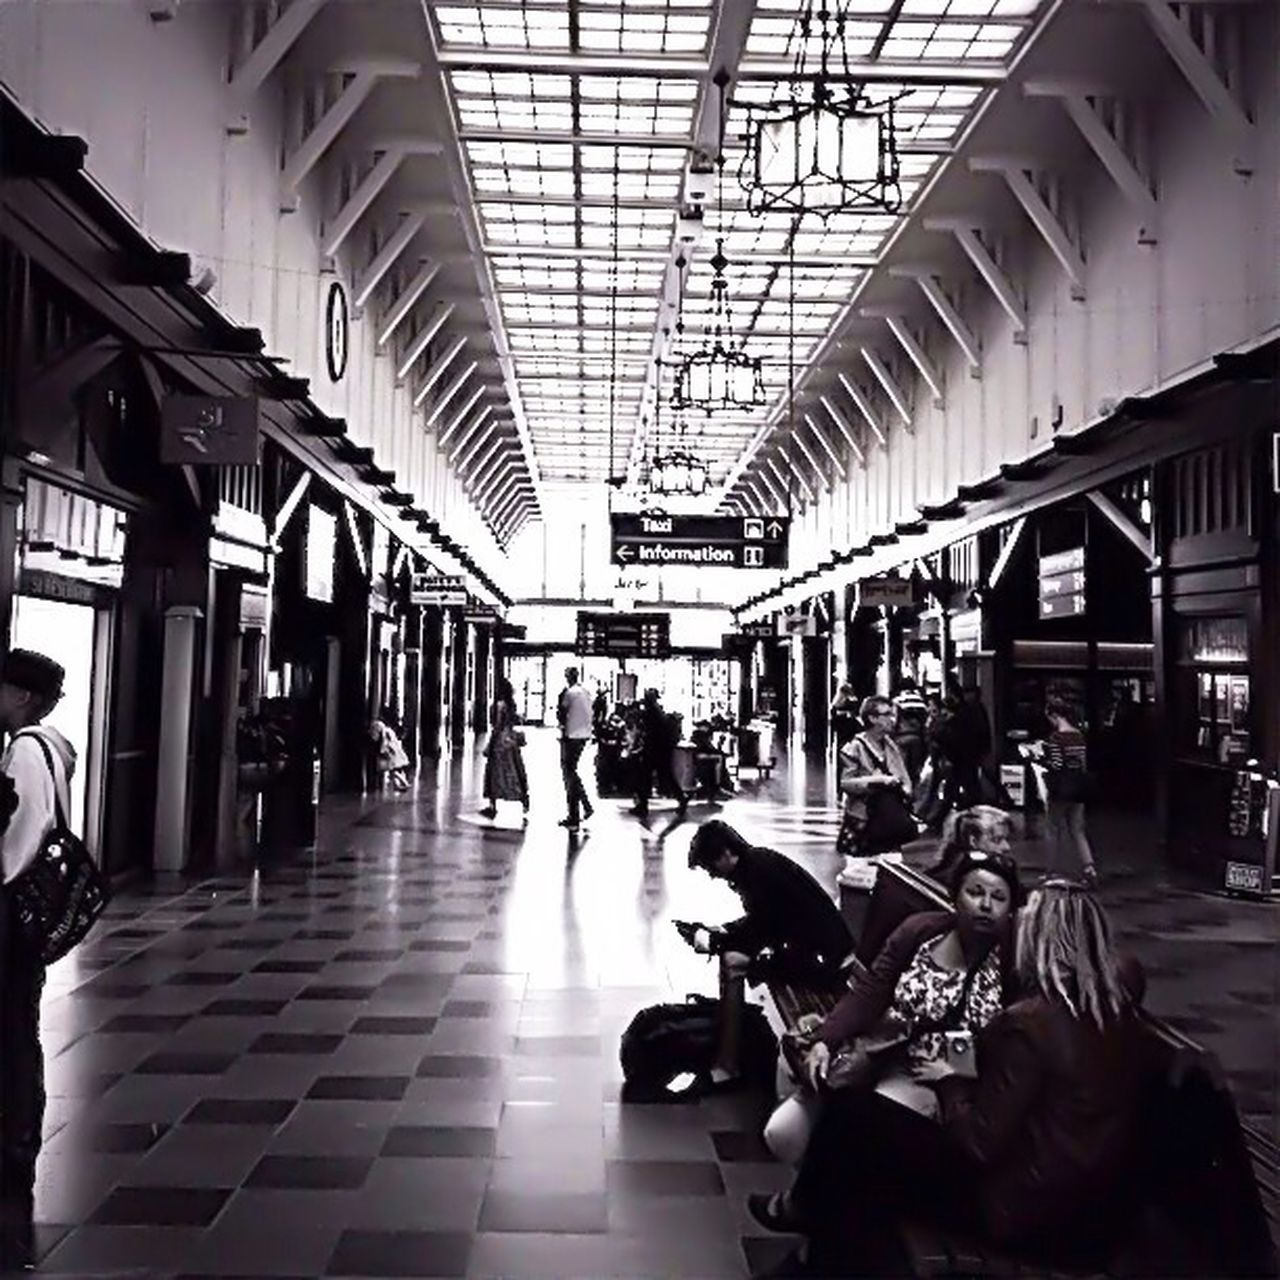 transportation, travel, indoors, large group of people, journey, airport, real people, men, day, people, architecture, adults only, adult, crowd